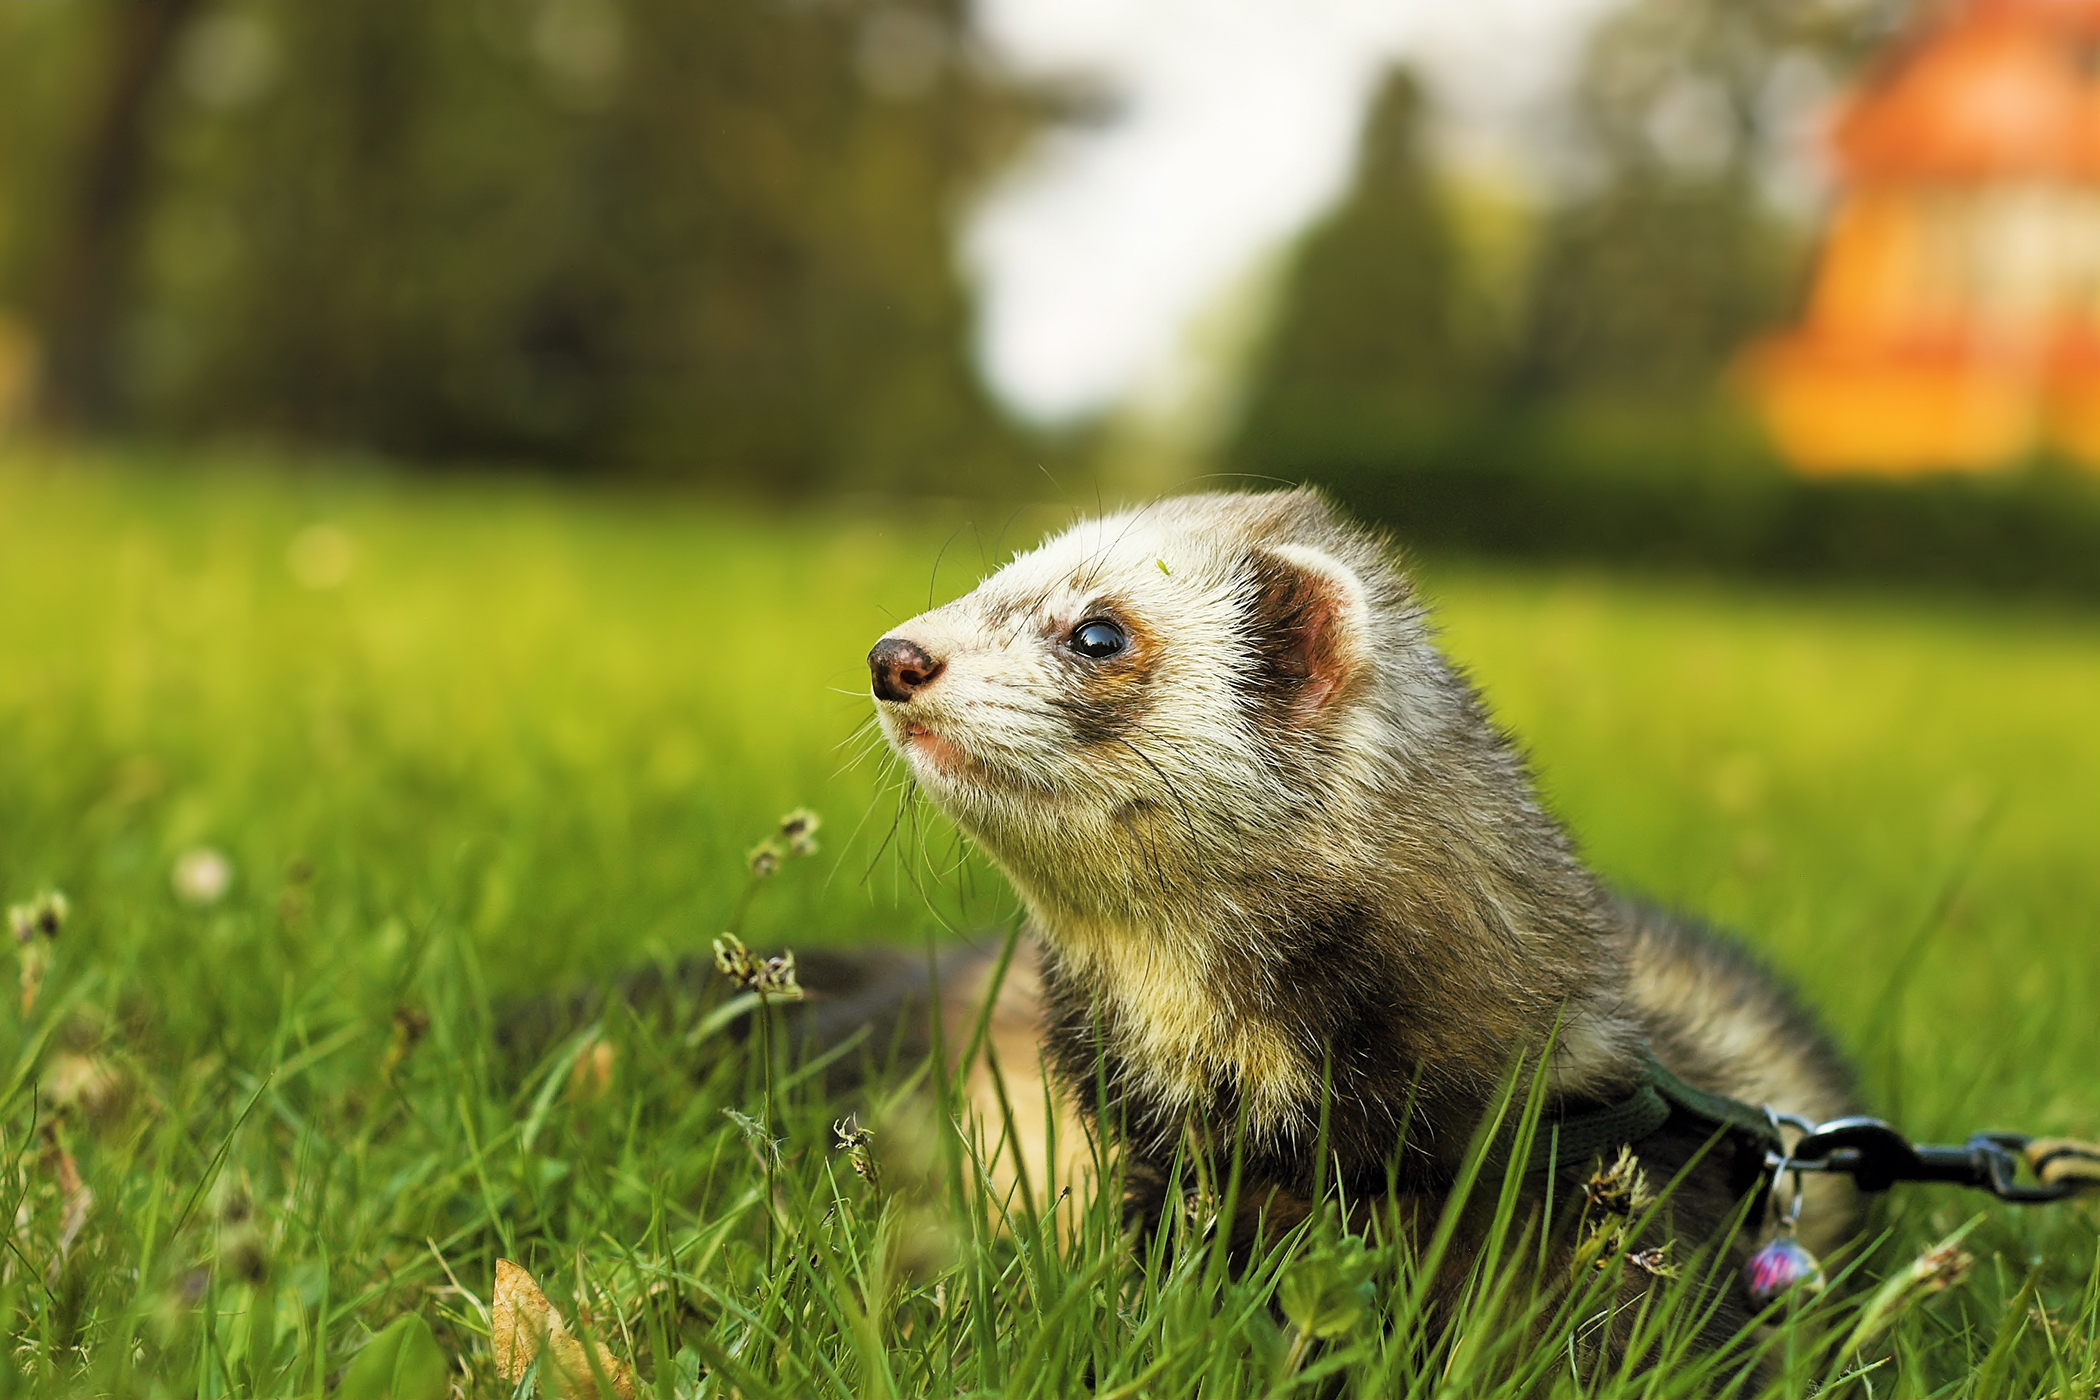 Pancreatic Tumor in Ferrets - Symptoms, Causes, Diagnosis, Treatment, Recovery, Management, Cost